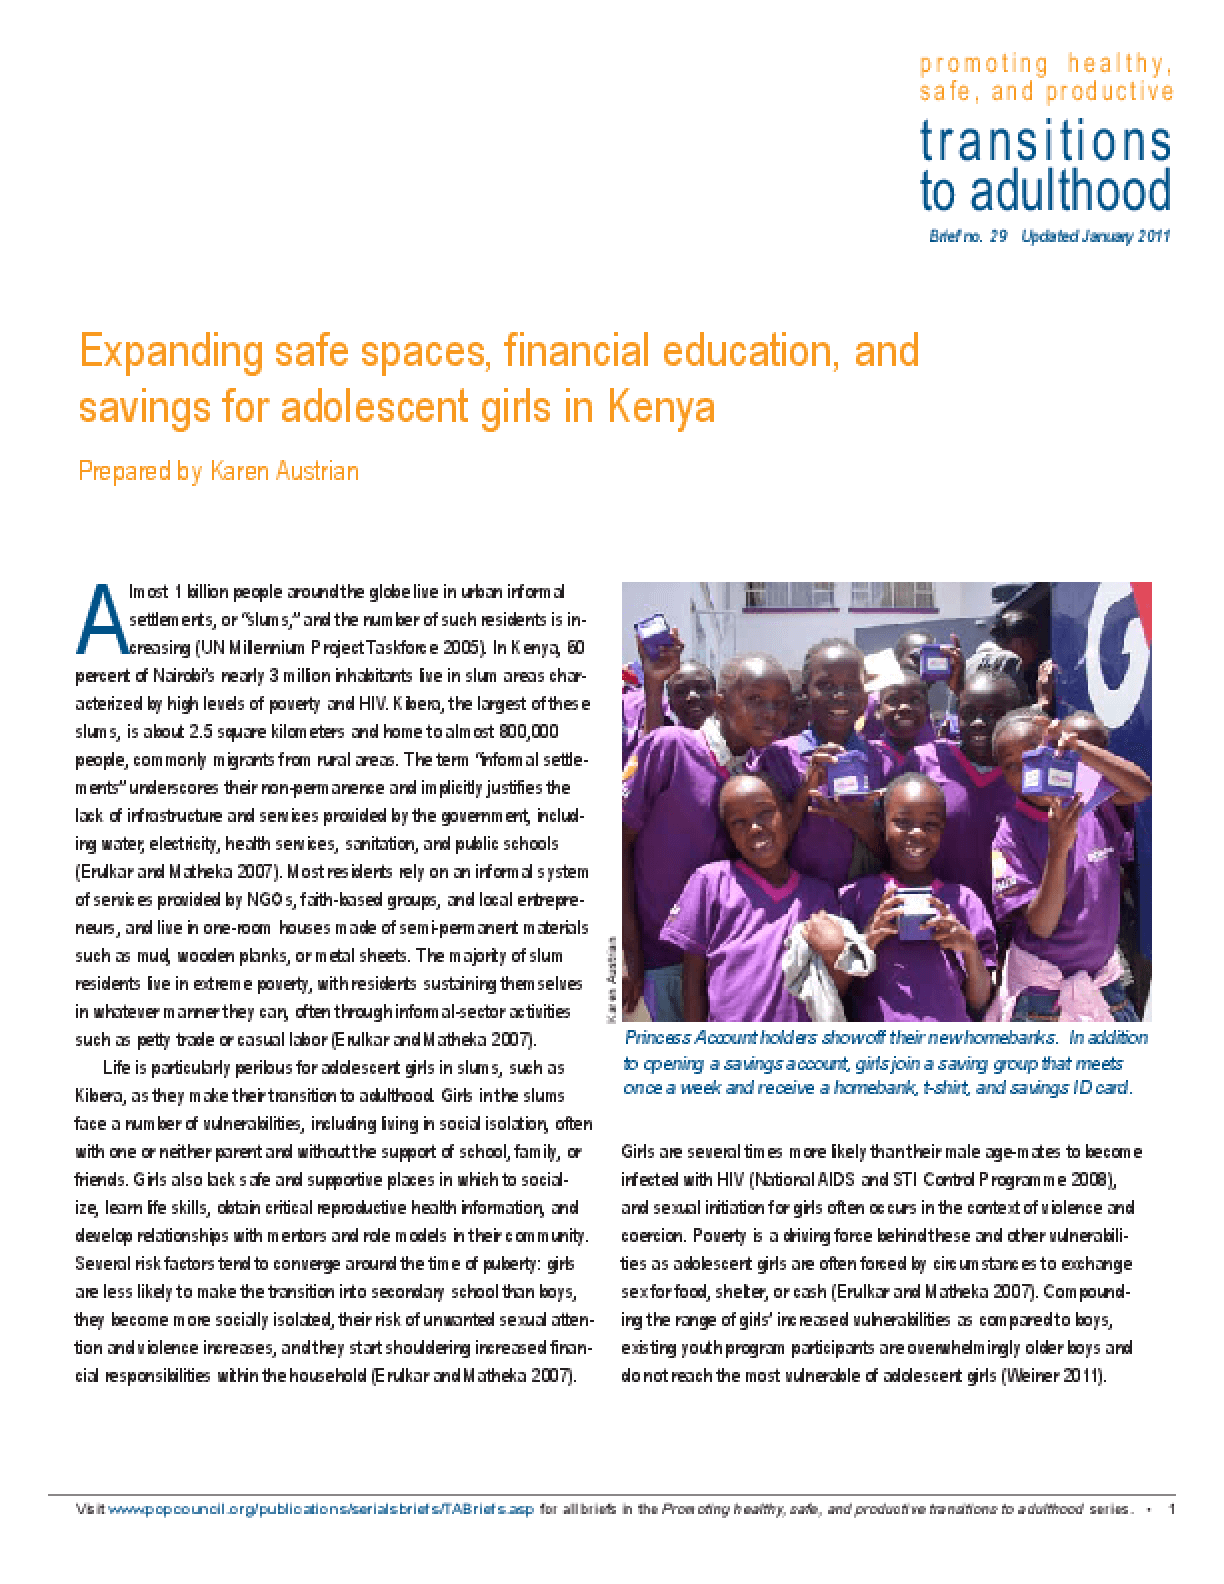 Expanding Safe Spaces, Financial Education, and Savings for Adolescent Girls in Kenya